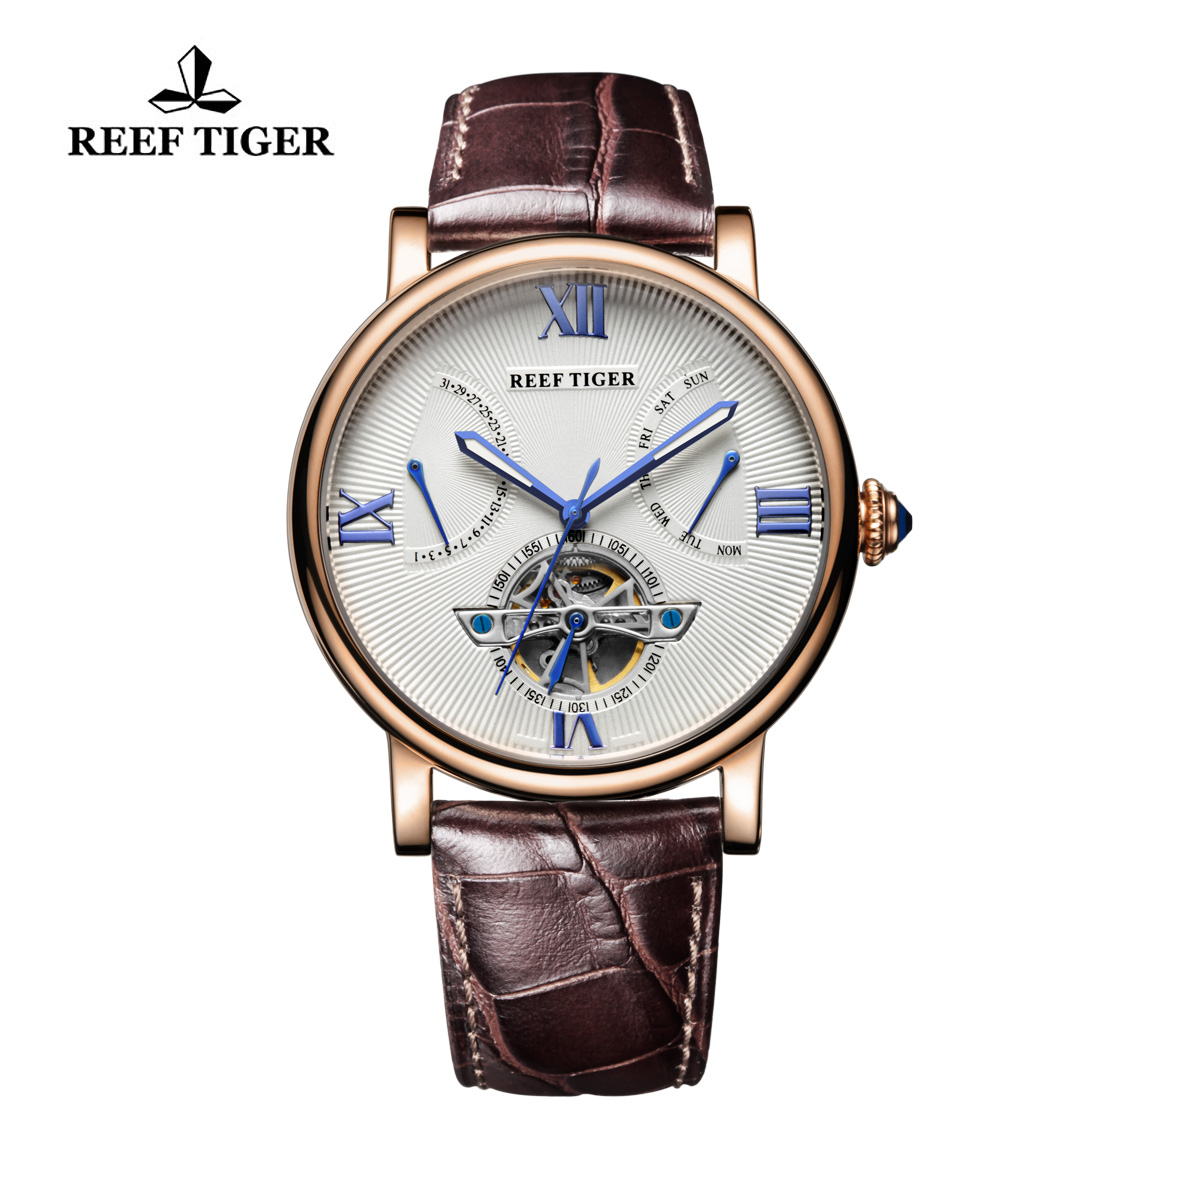 Reef Tiger Carved Spiral Tourbillon Watch with Day Date White Dial Calfskin Strap RGA191